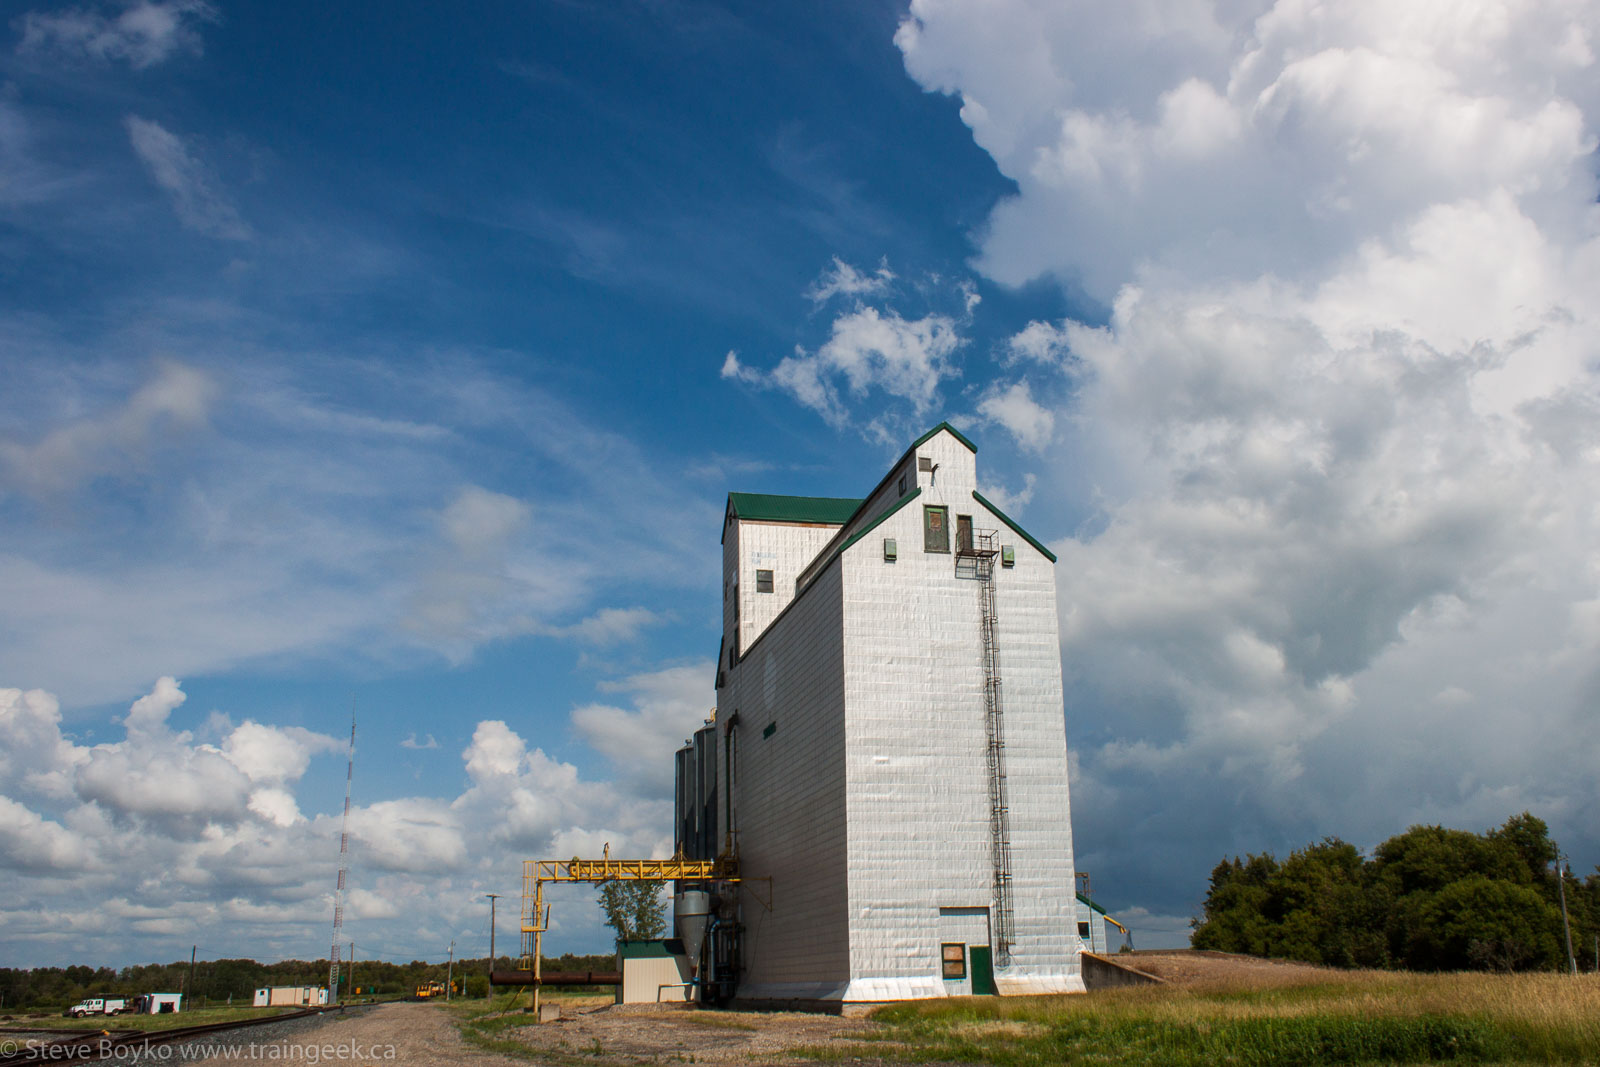 The former Manitoba Pool grain elevator in Souris, MB 2014/08/09